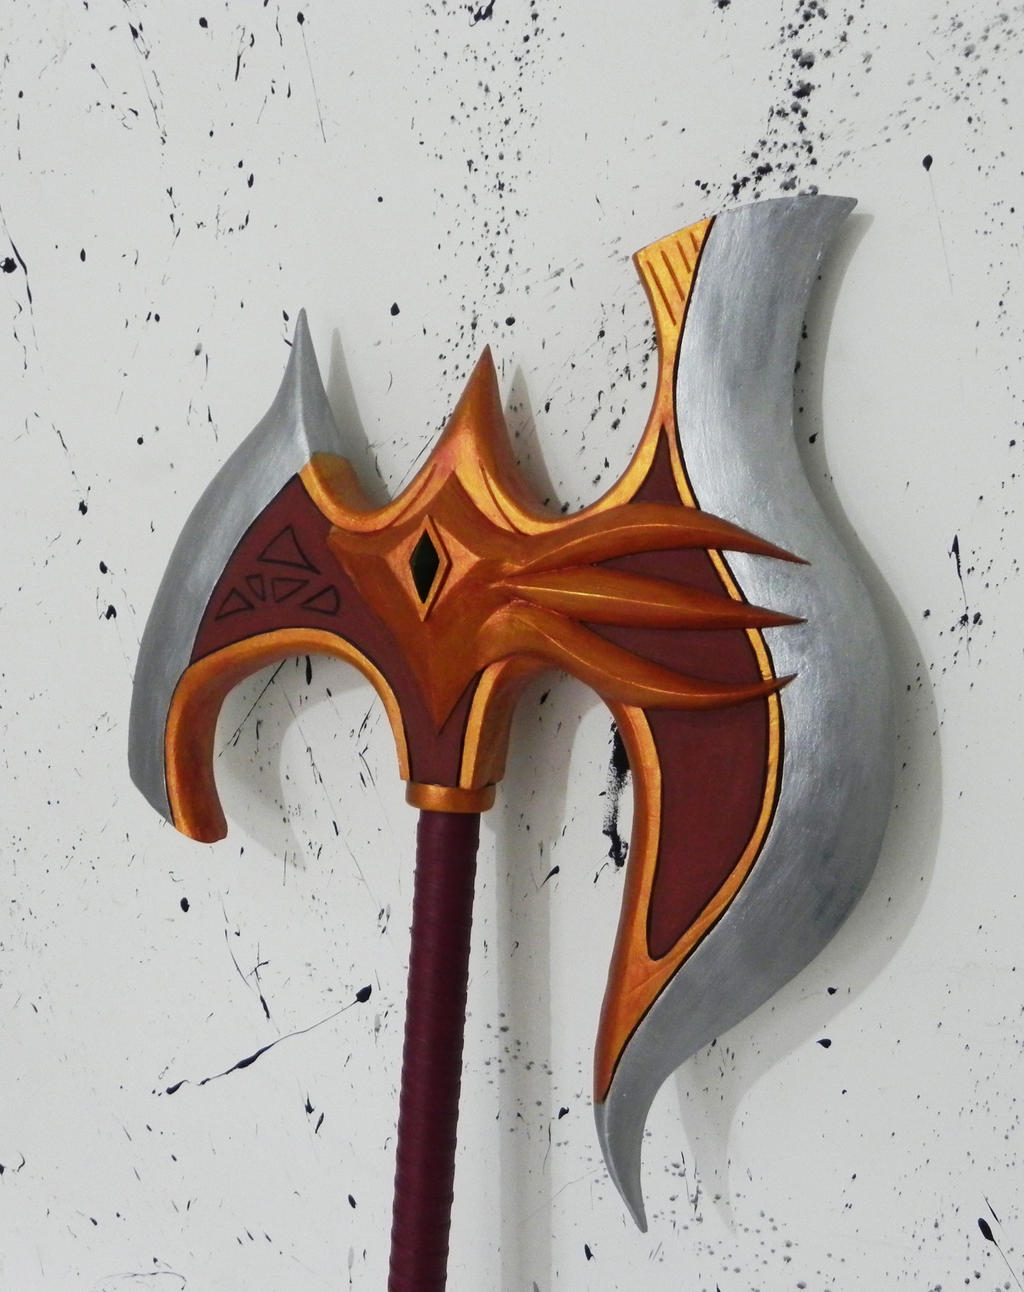 Lord Darius axe League of Legends by TheGoblinFactory